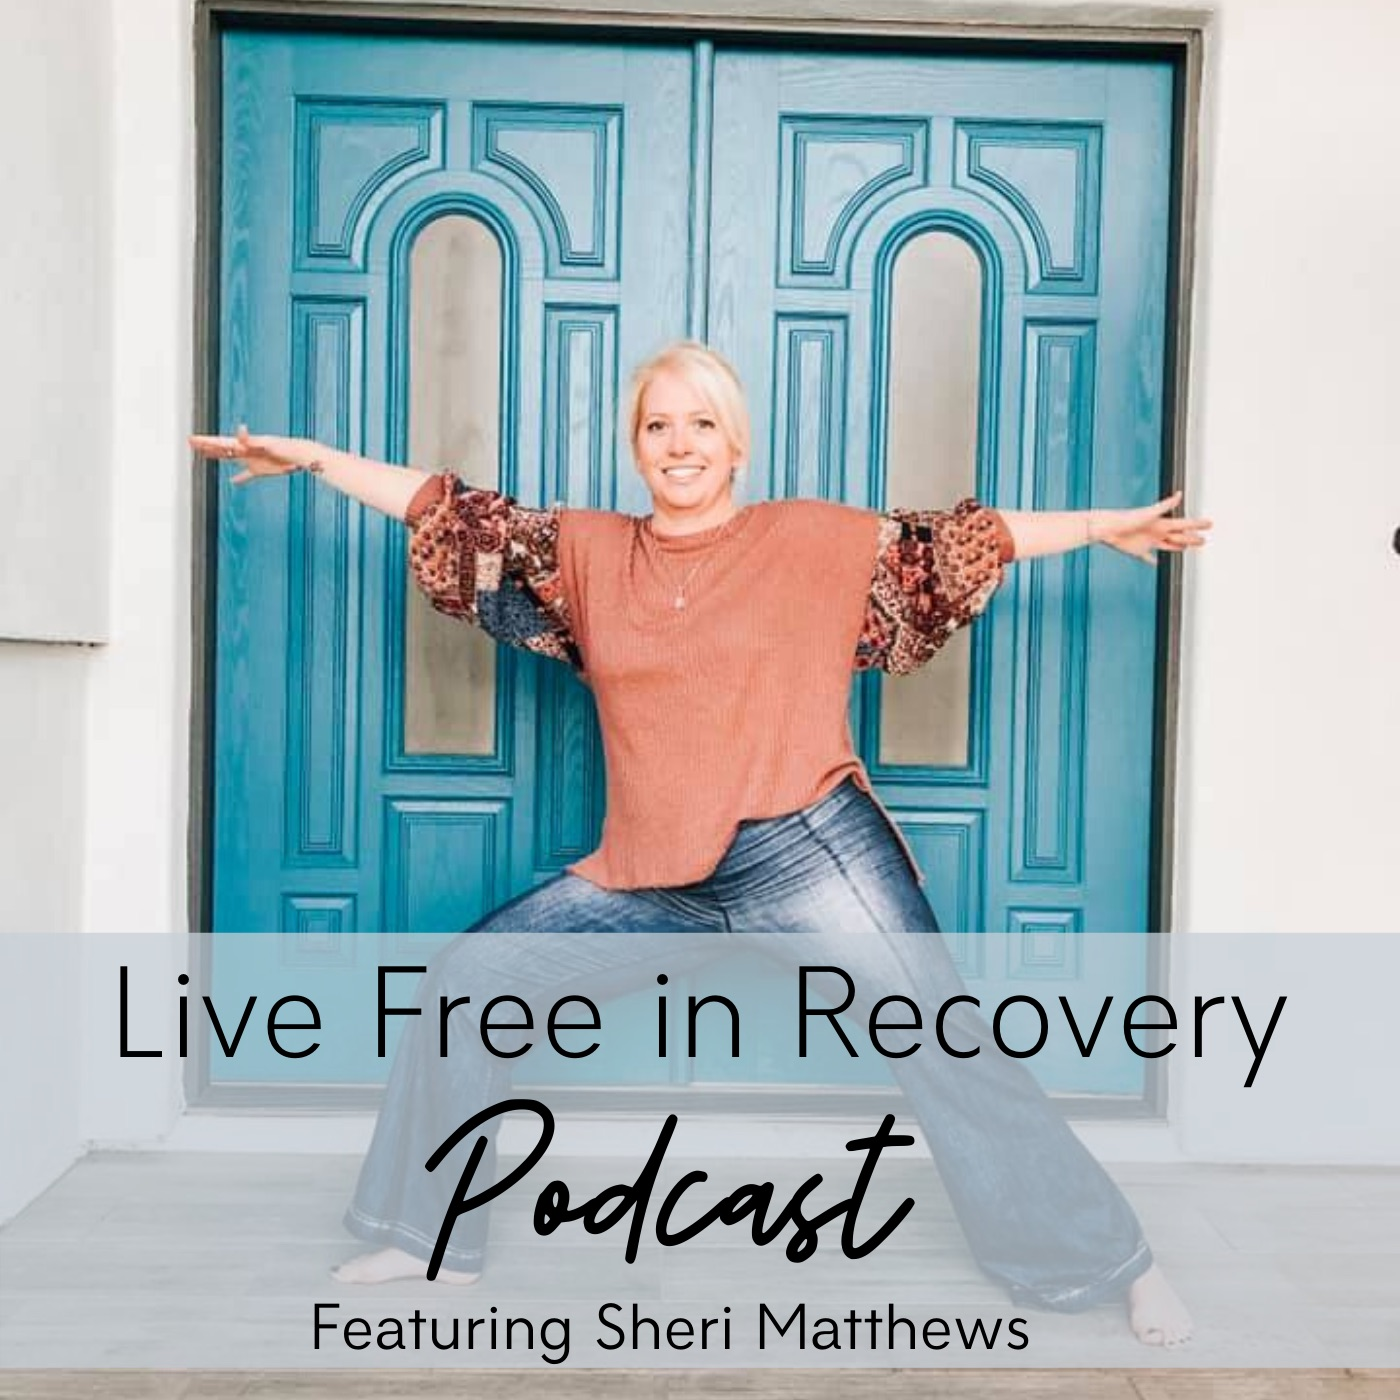 Live Free in Recovery™ Featuring Sheri Matthews